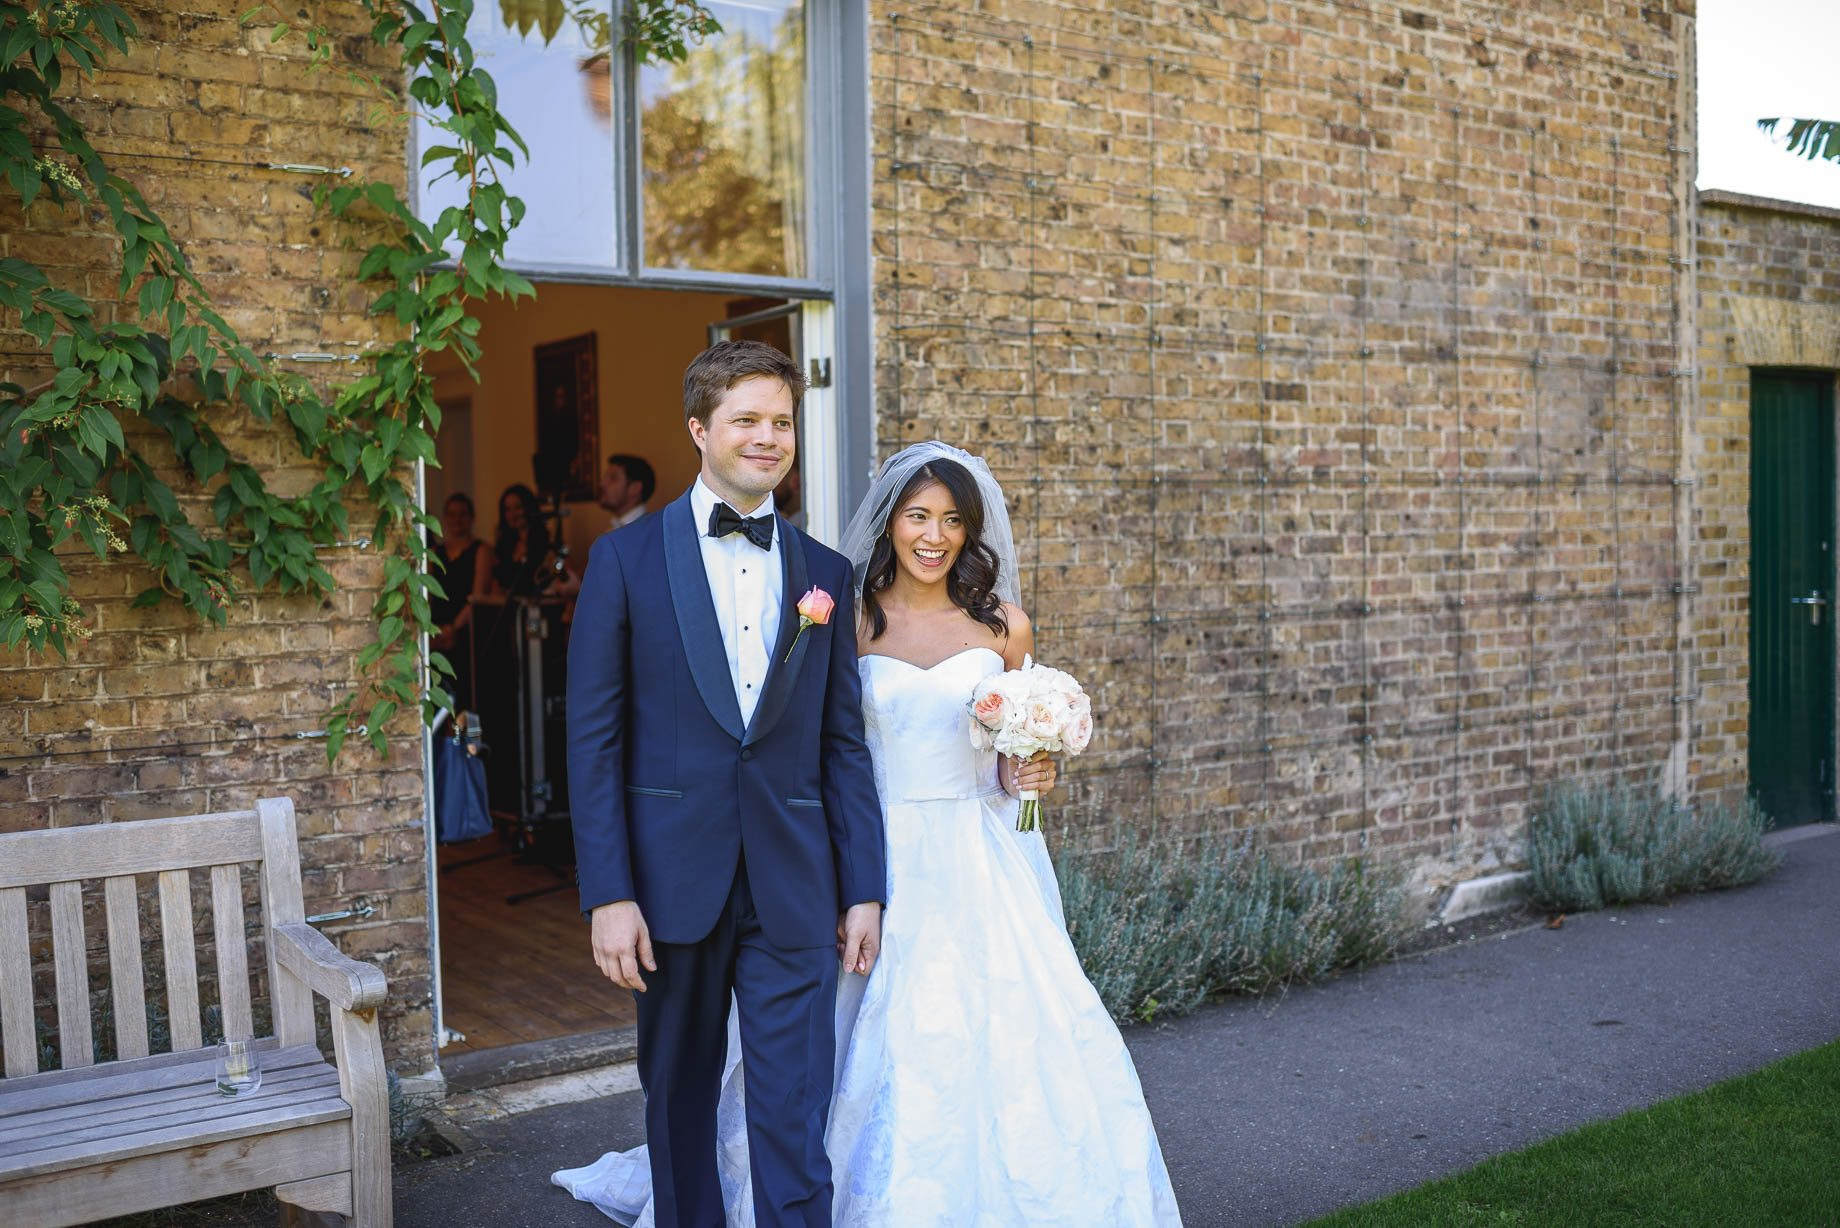 Kew Gardens wedding photography - Guy Collier Photography - Gloria and Frederik (53 of 173)